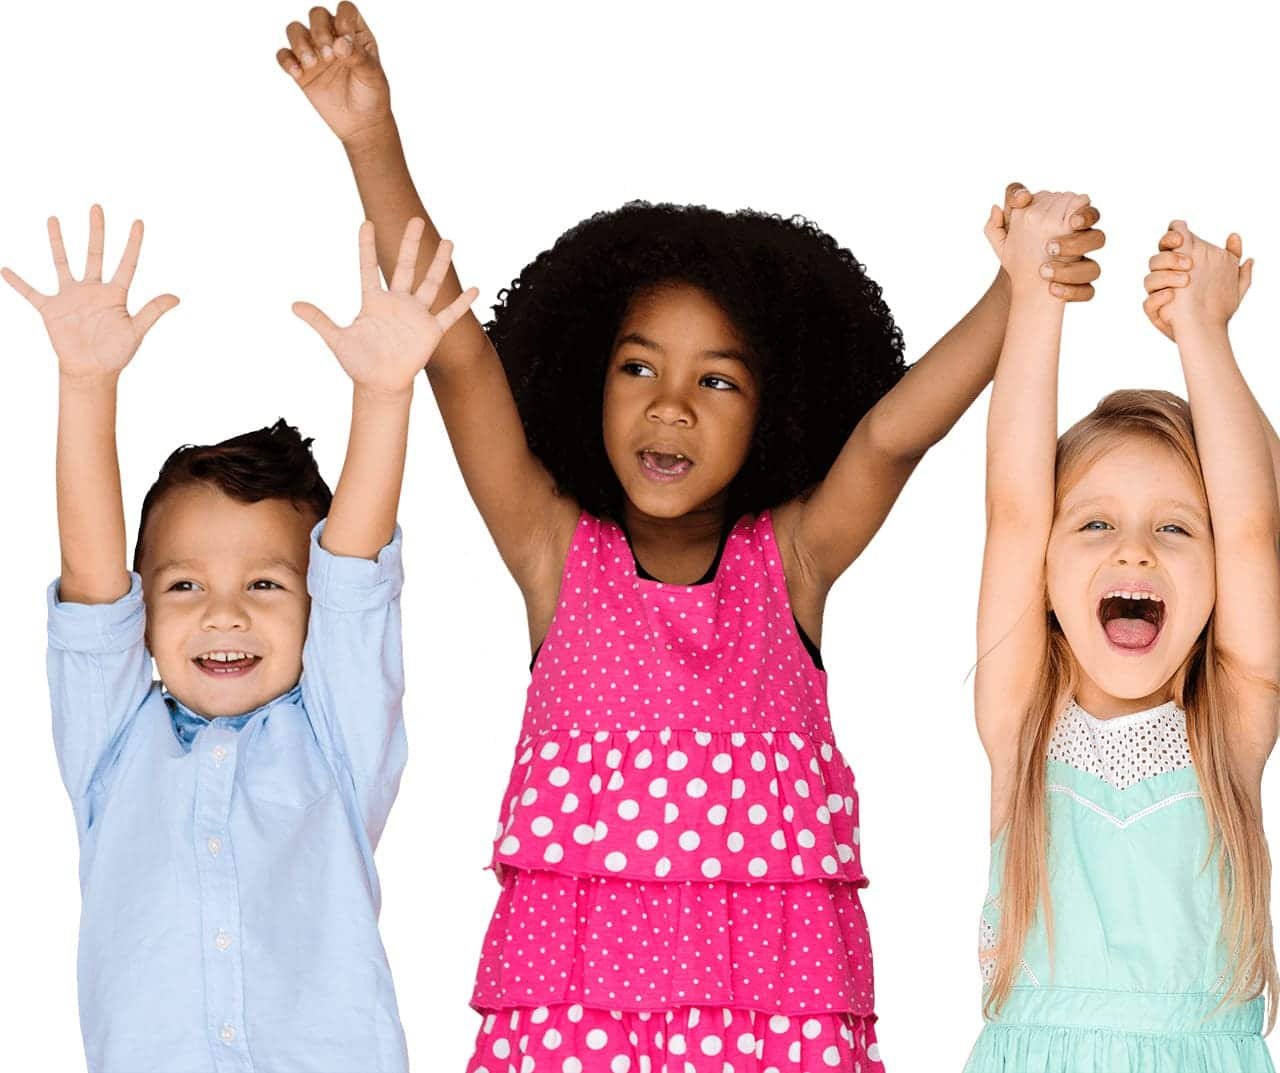 The next generation in childcare management software